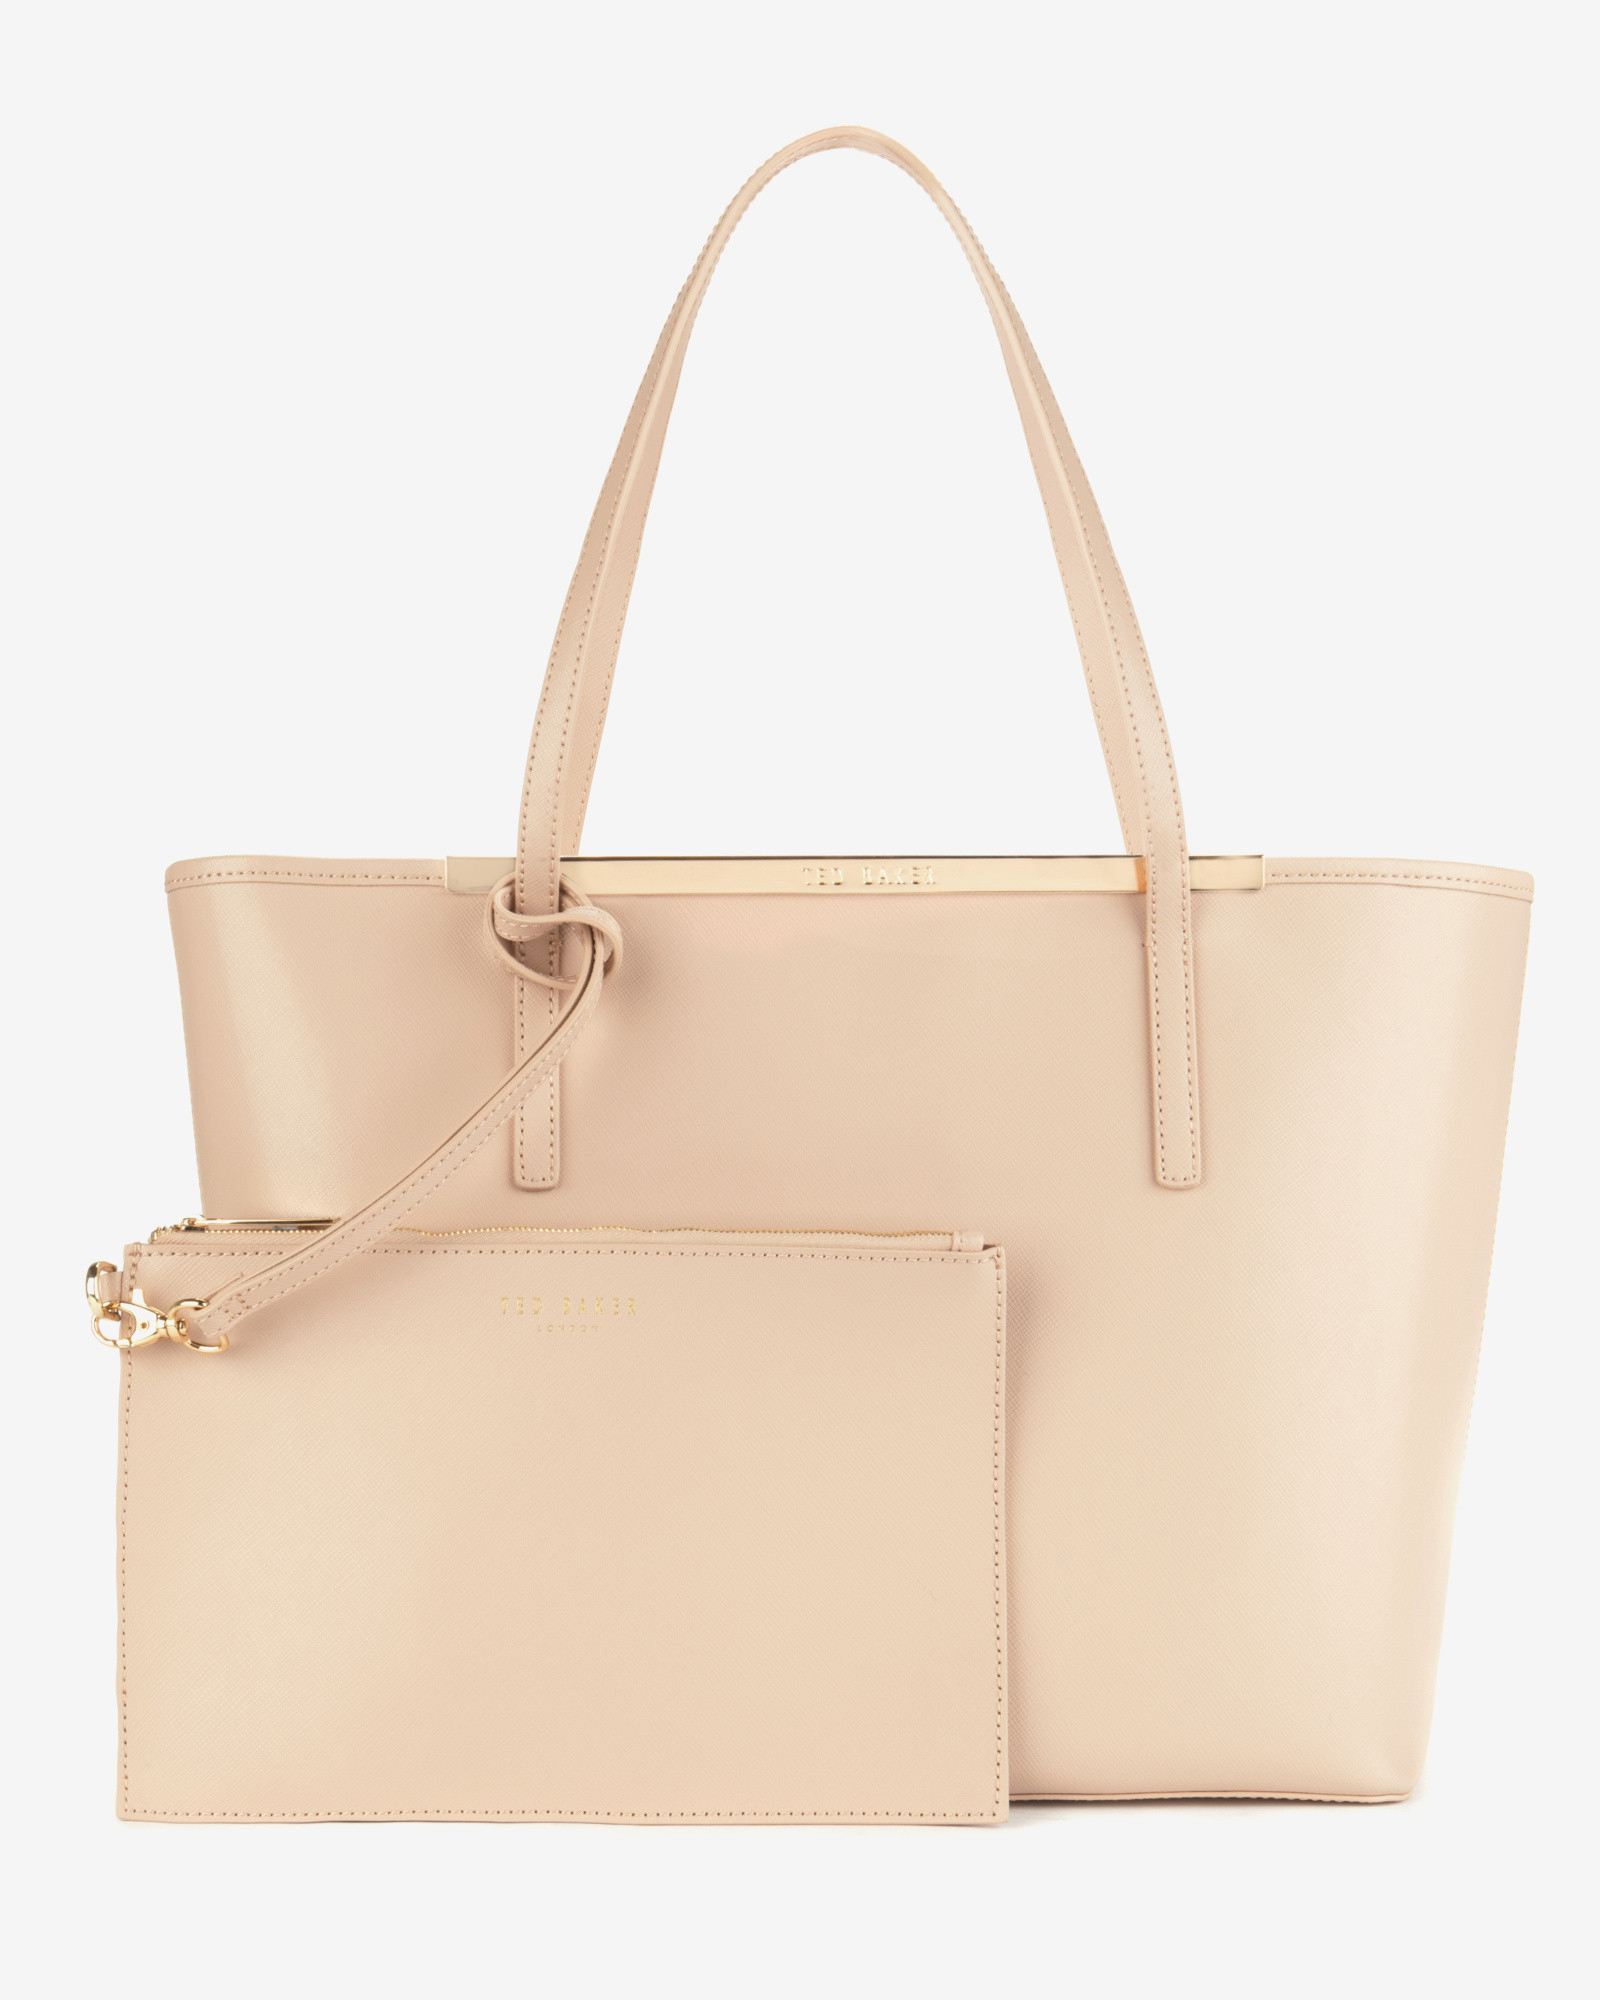 Ted baker Leather Shopper Bag in Natural | Lyst